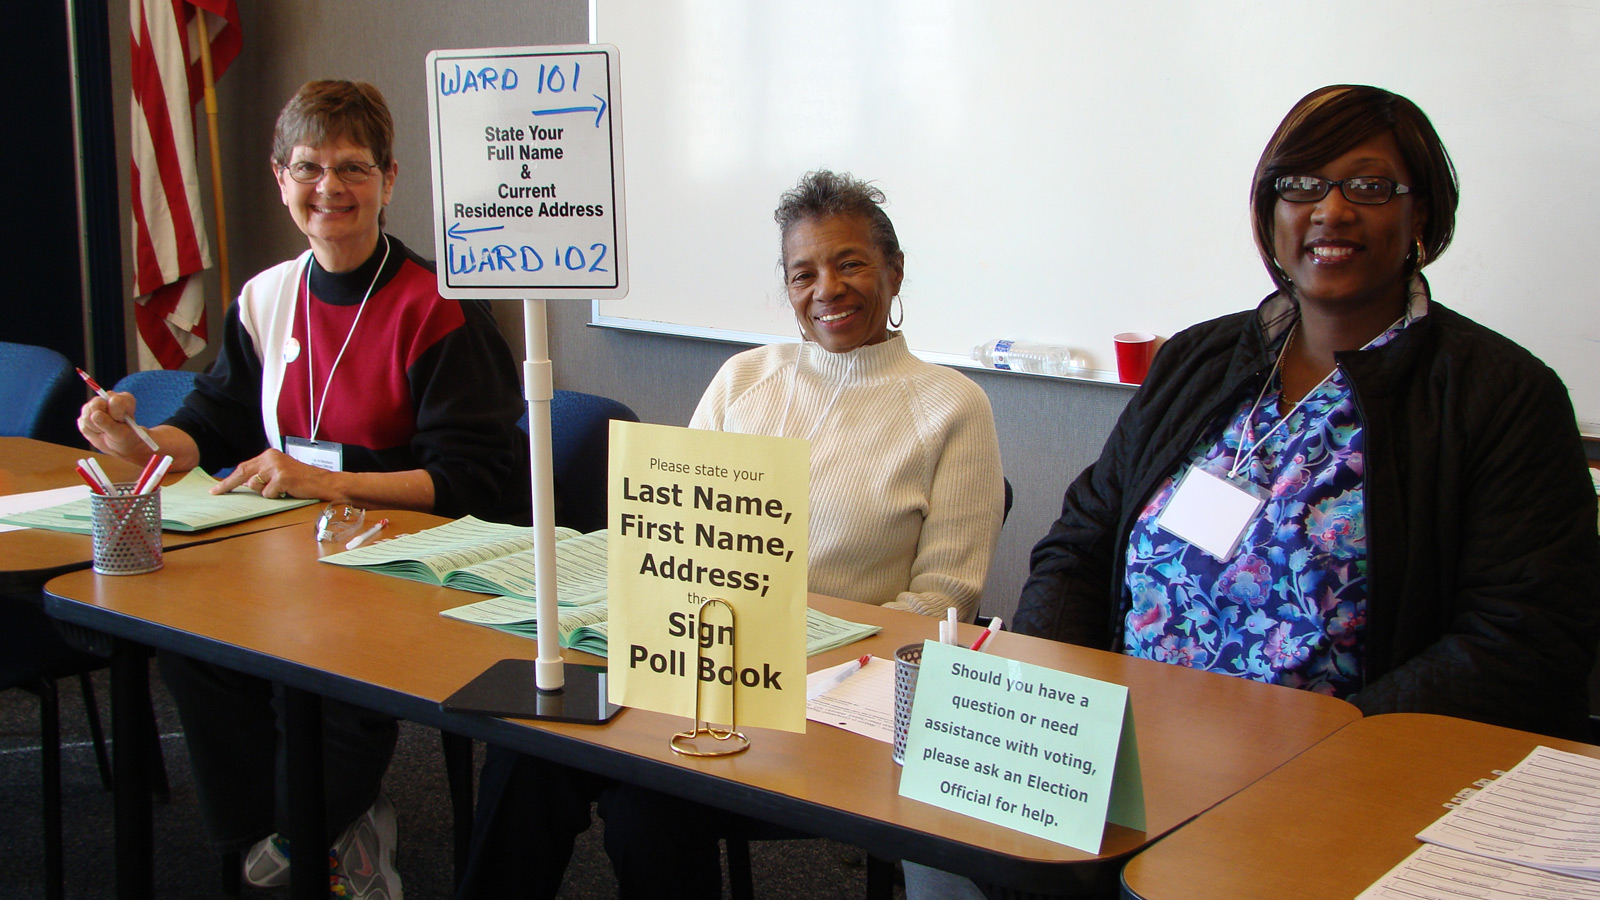 Three smiling election officials